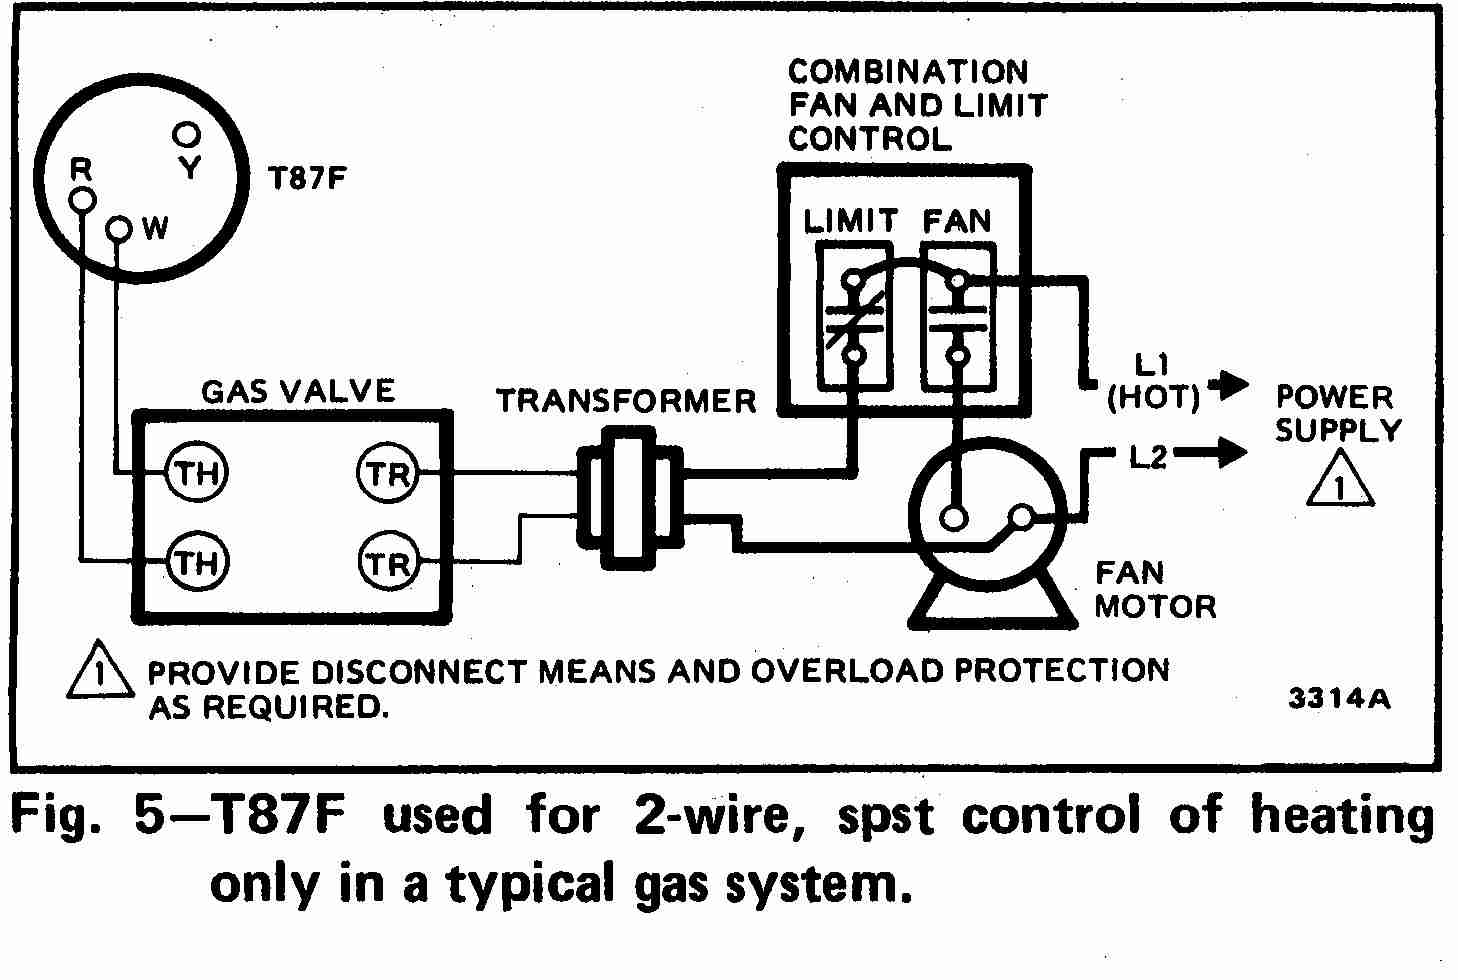 TT_T87F_0002_2Wg_DJF room thermostat wiring diagrams for hvac systems thermostat wiring diagram 5 wire at bayanpartner.co